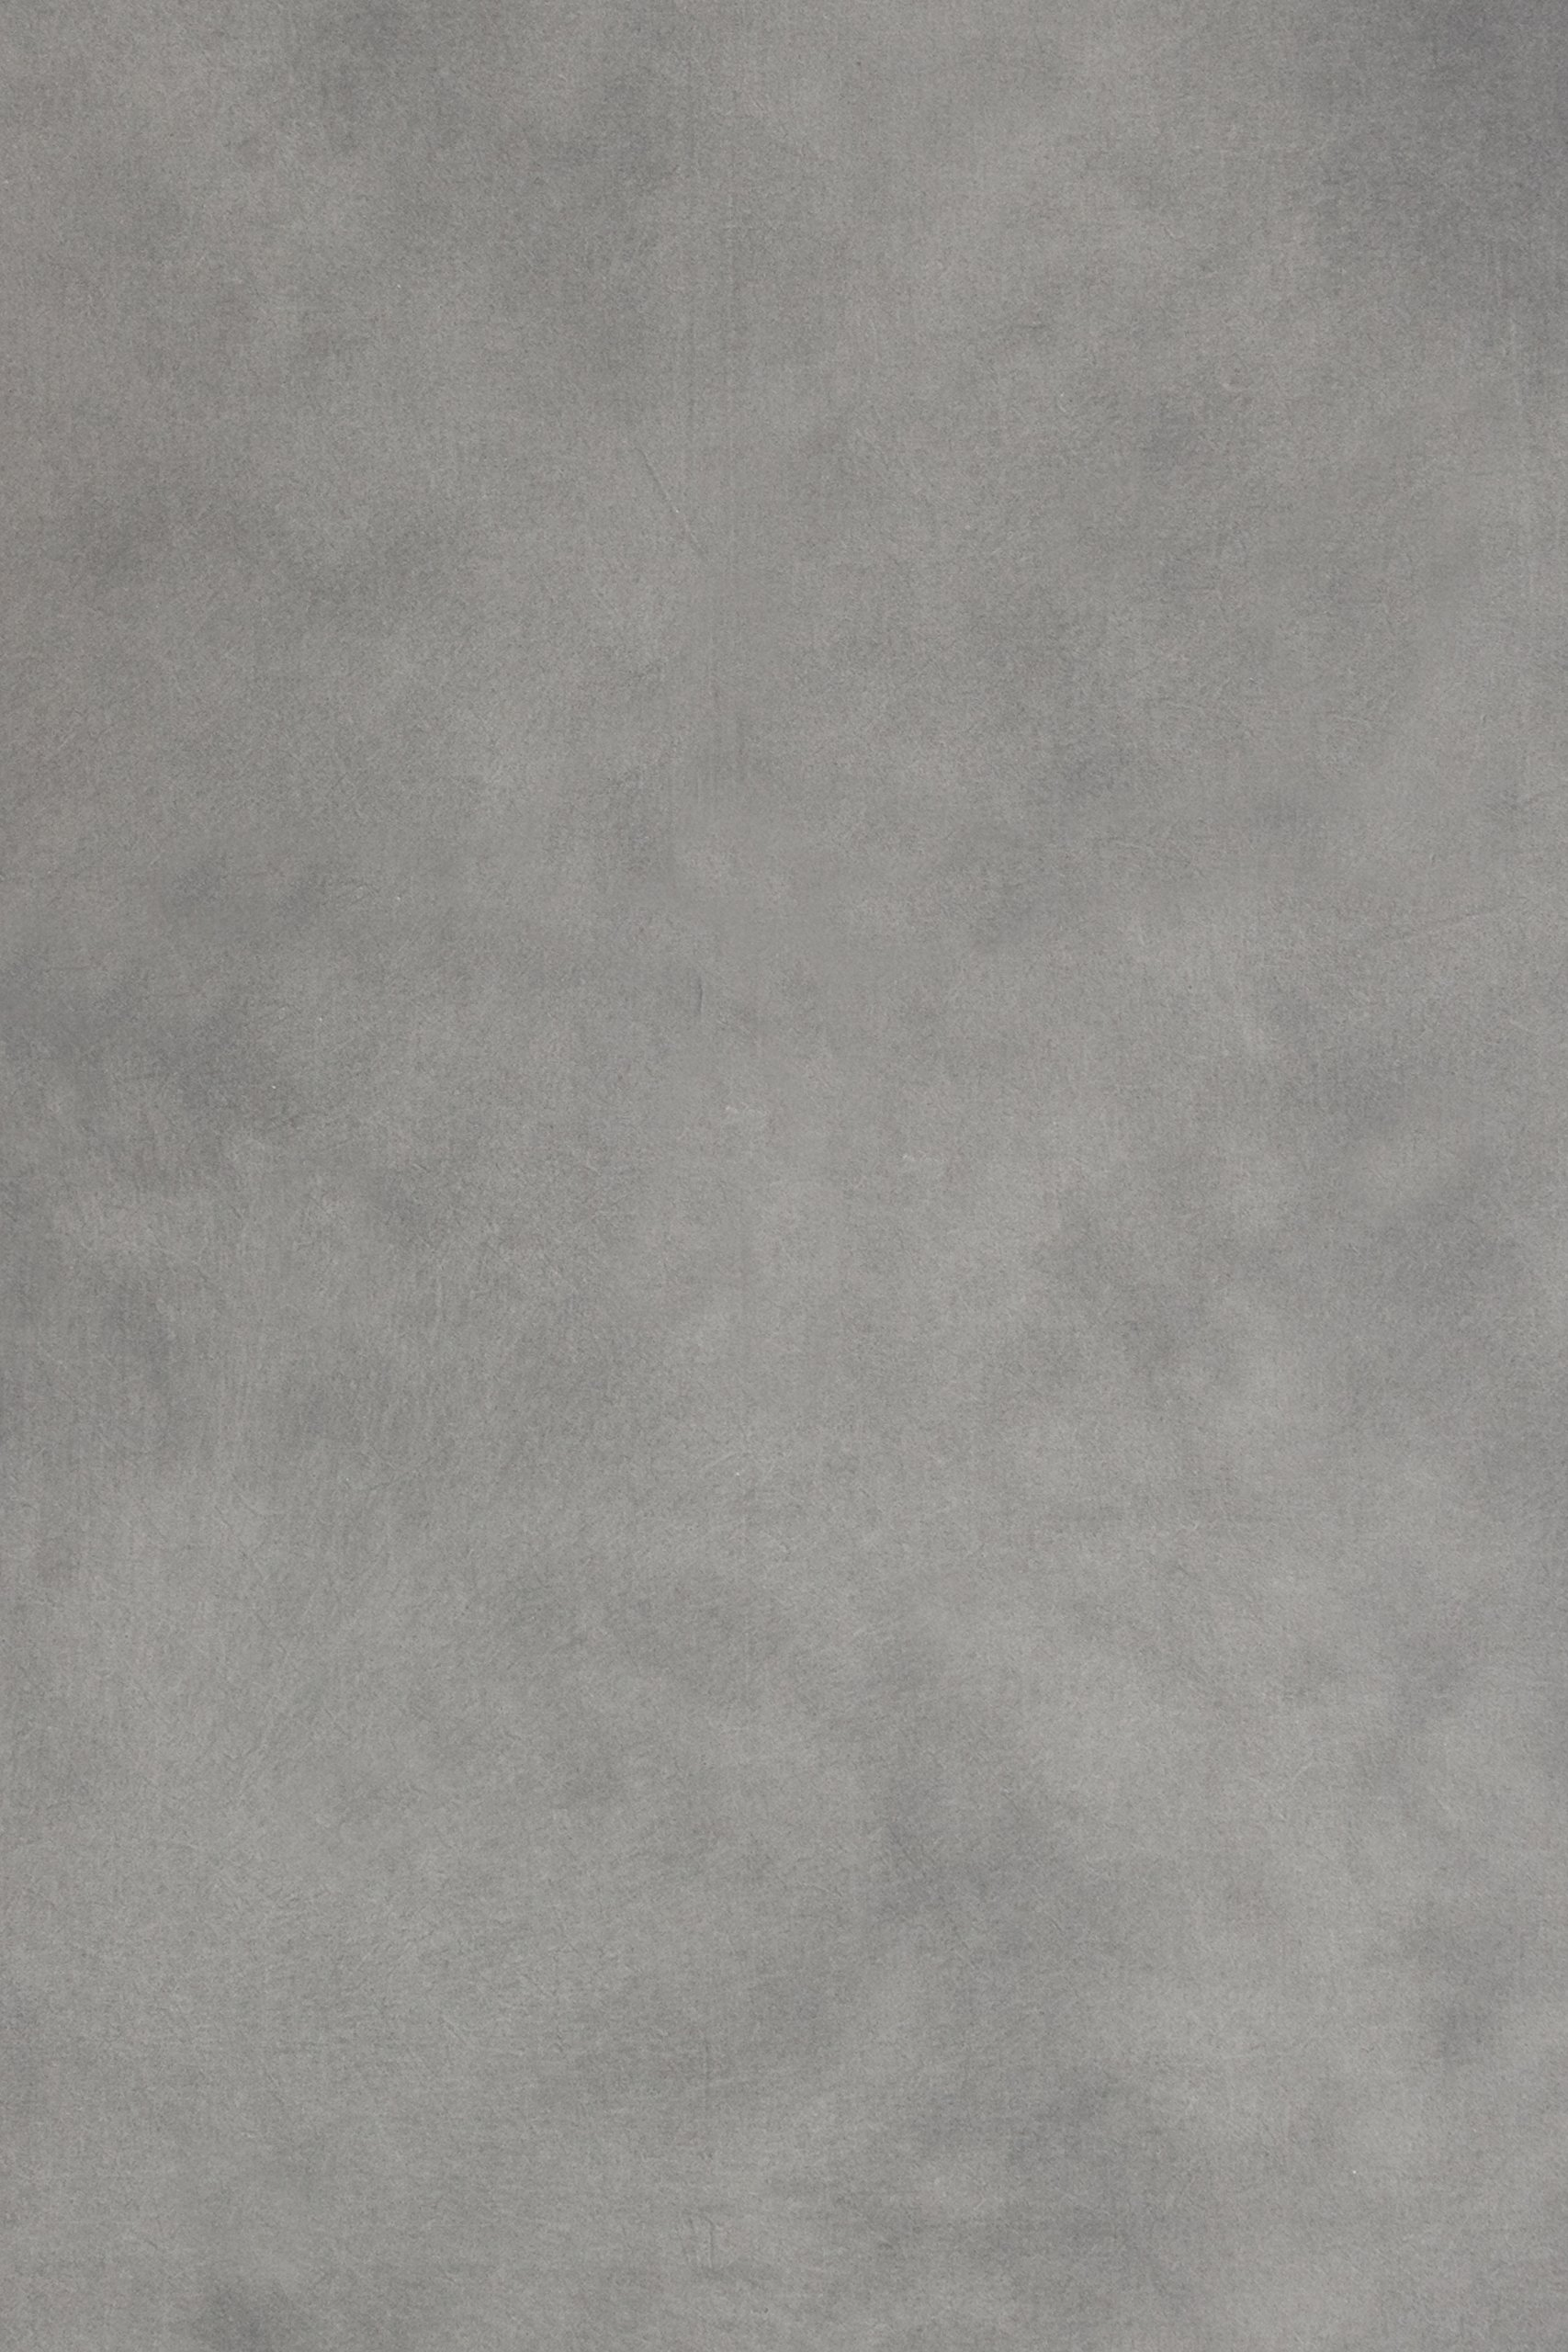 Backdrop Alley Whale Gray Handpainted Muslin Photo Background, 10' x 12'